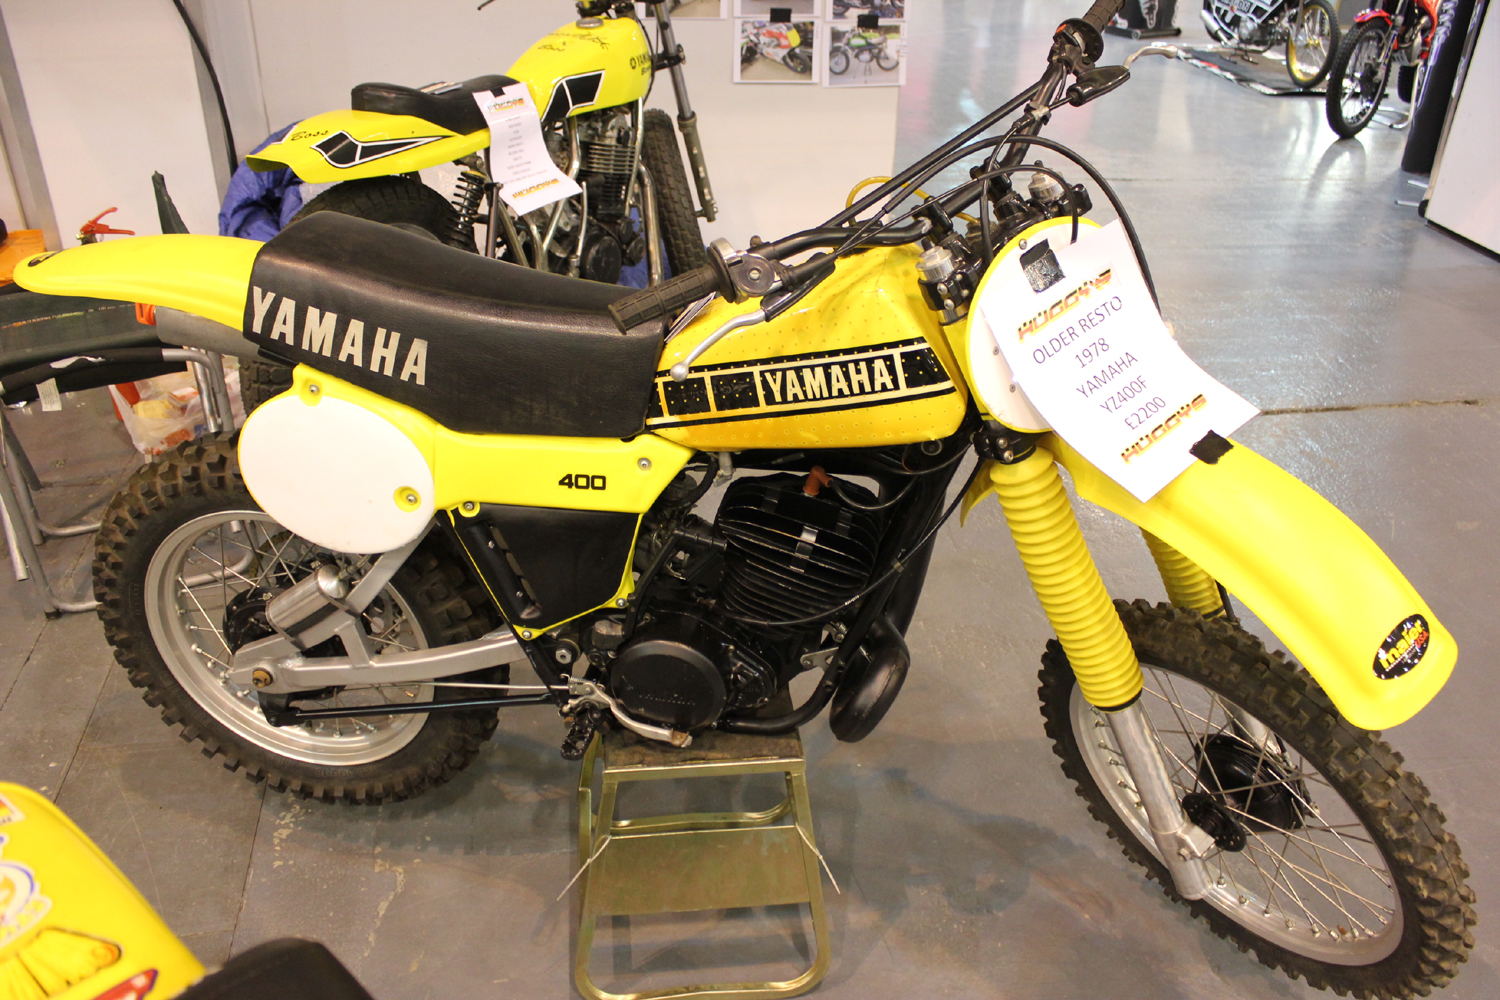 classicdirtbikerider.com-photo by Mr J-2015 Telford classic dirt bike show-1978 YAMAHA YZ400F